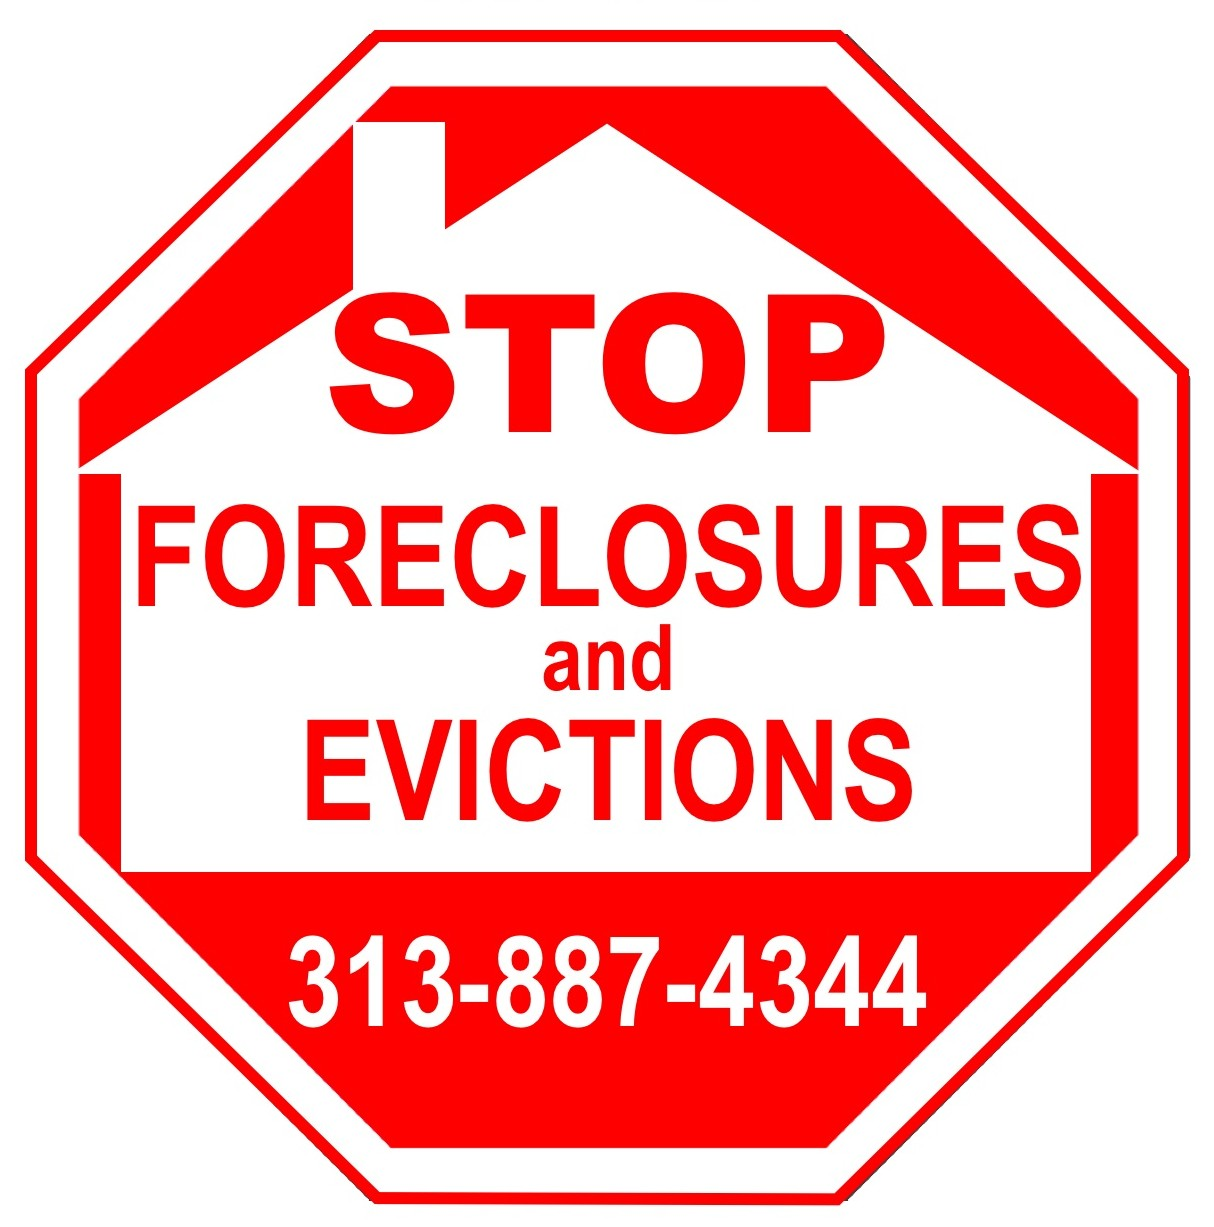 Stop Foreclosures                                         and Evictions